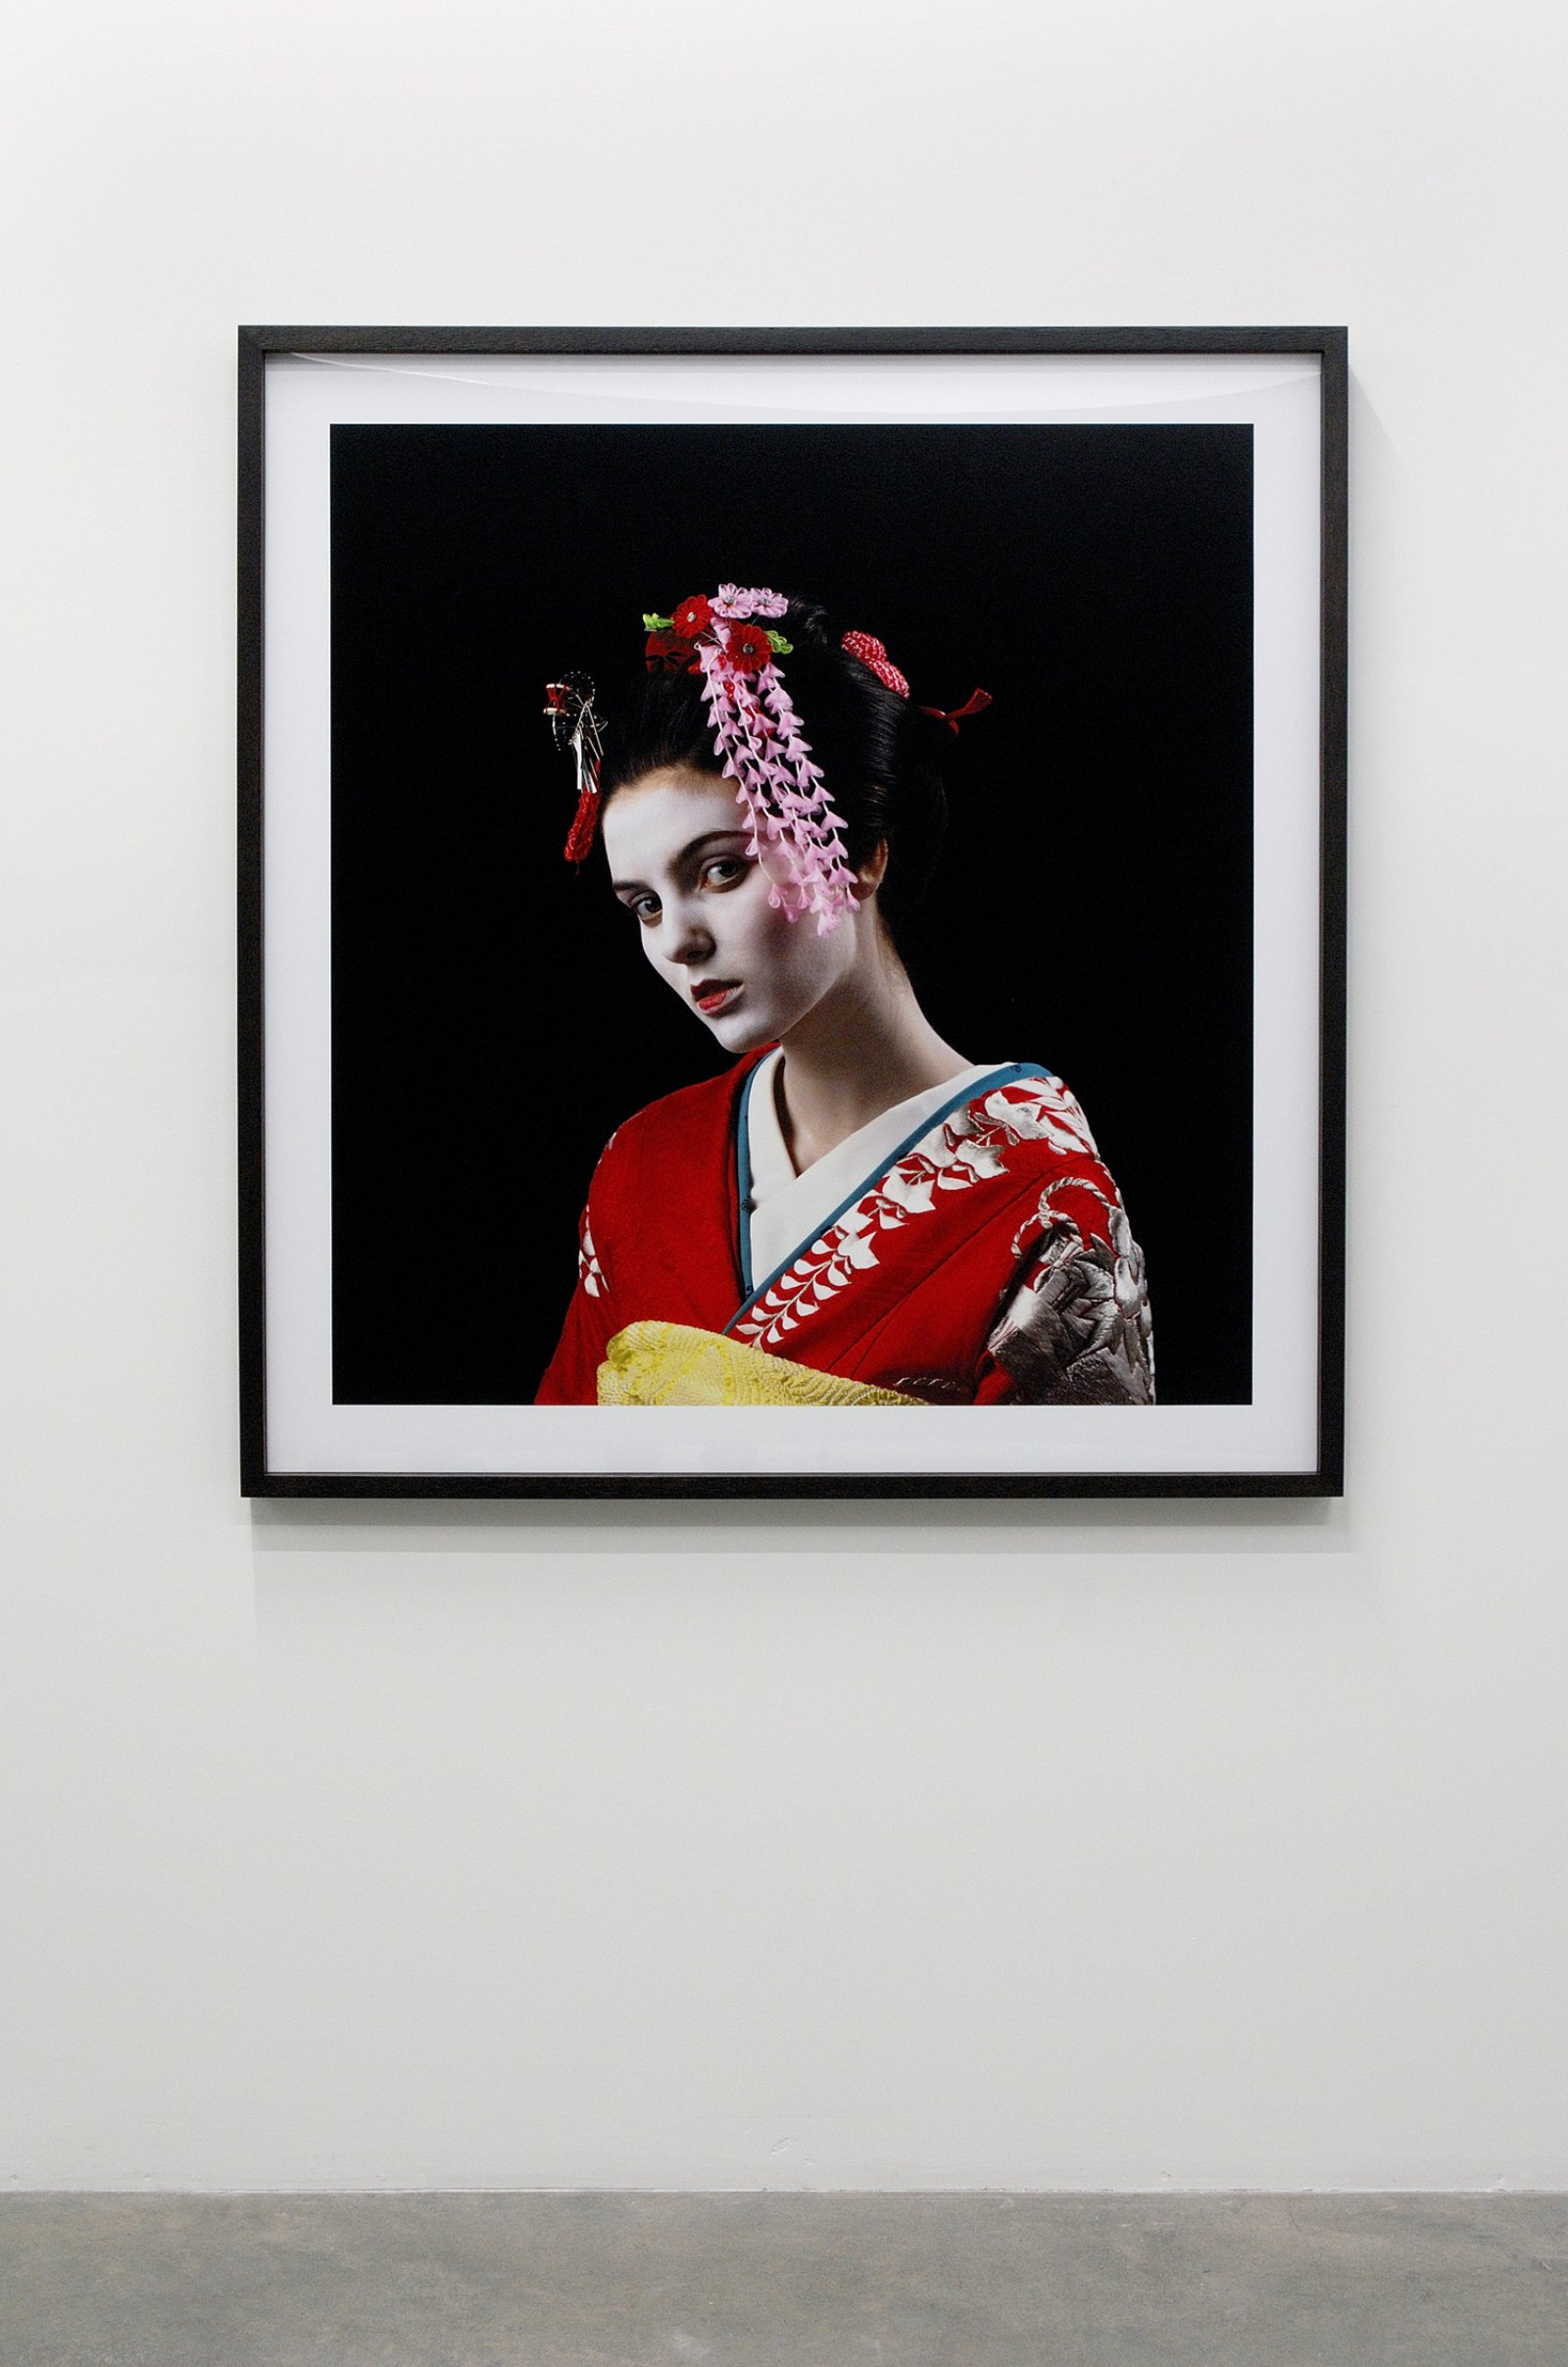 Ron Terada, Maiko #1, Maiko #2, Maiko #3 (detail), 2008, 3 pigment ink prints, 47 x 44 in. (120 x 112 cm) by Ron Terada